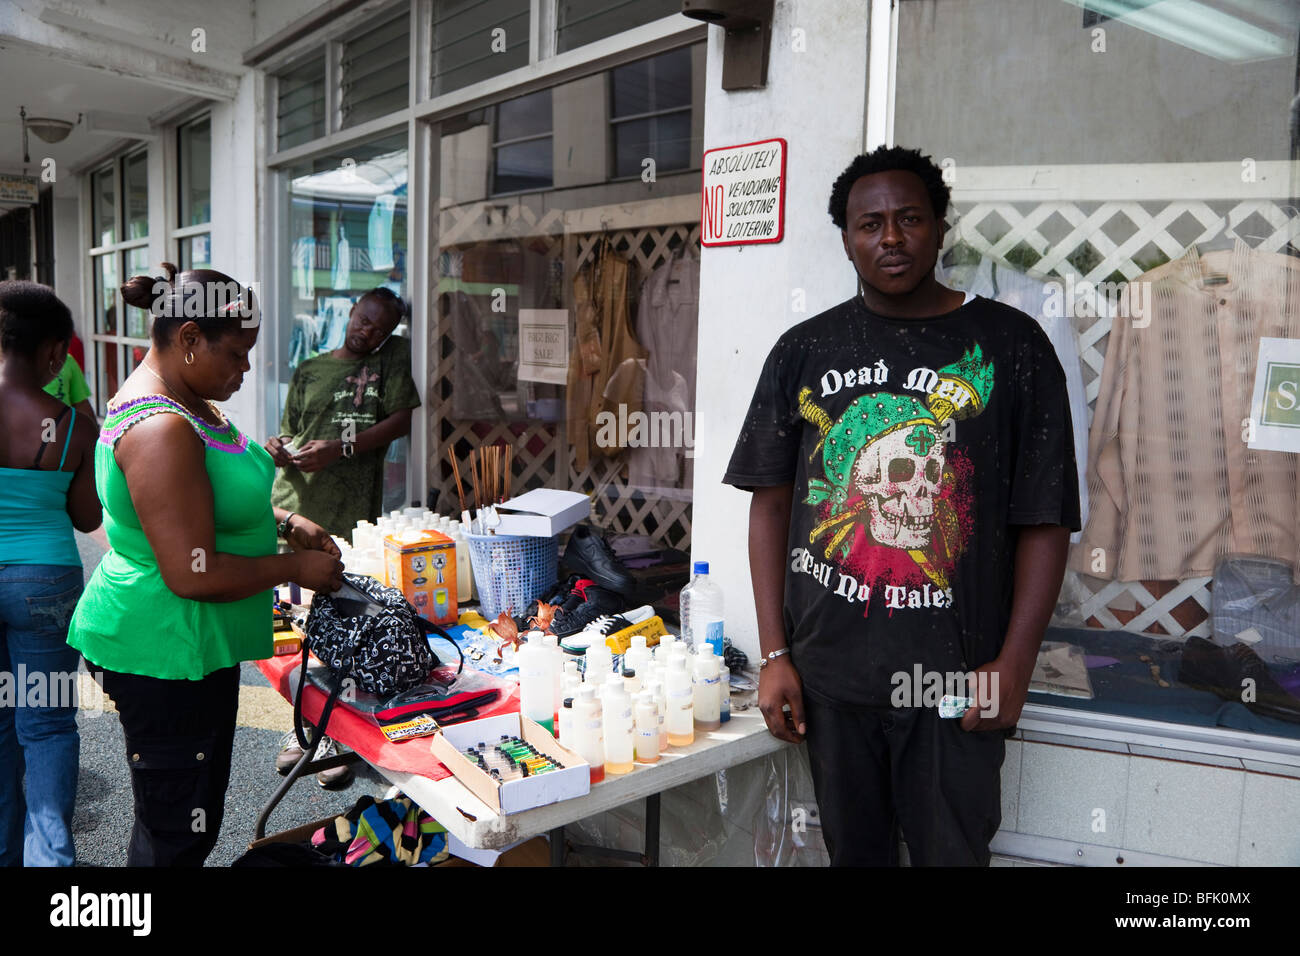 Black man from Antigua selling household goods from a stall at a street corner in St Johns town. Stock Photo